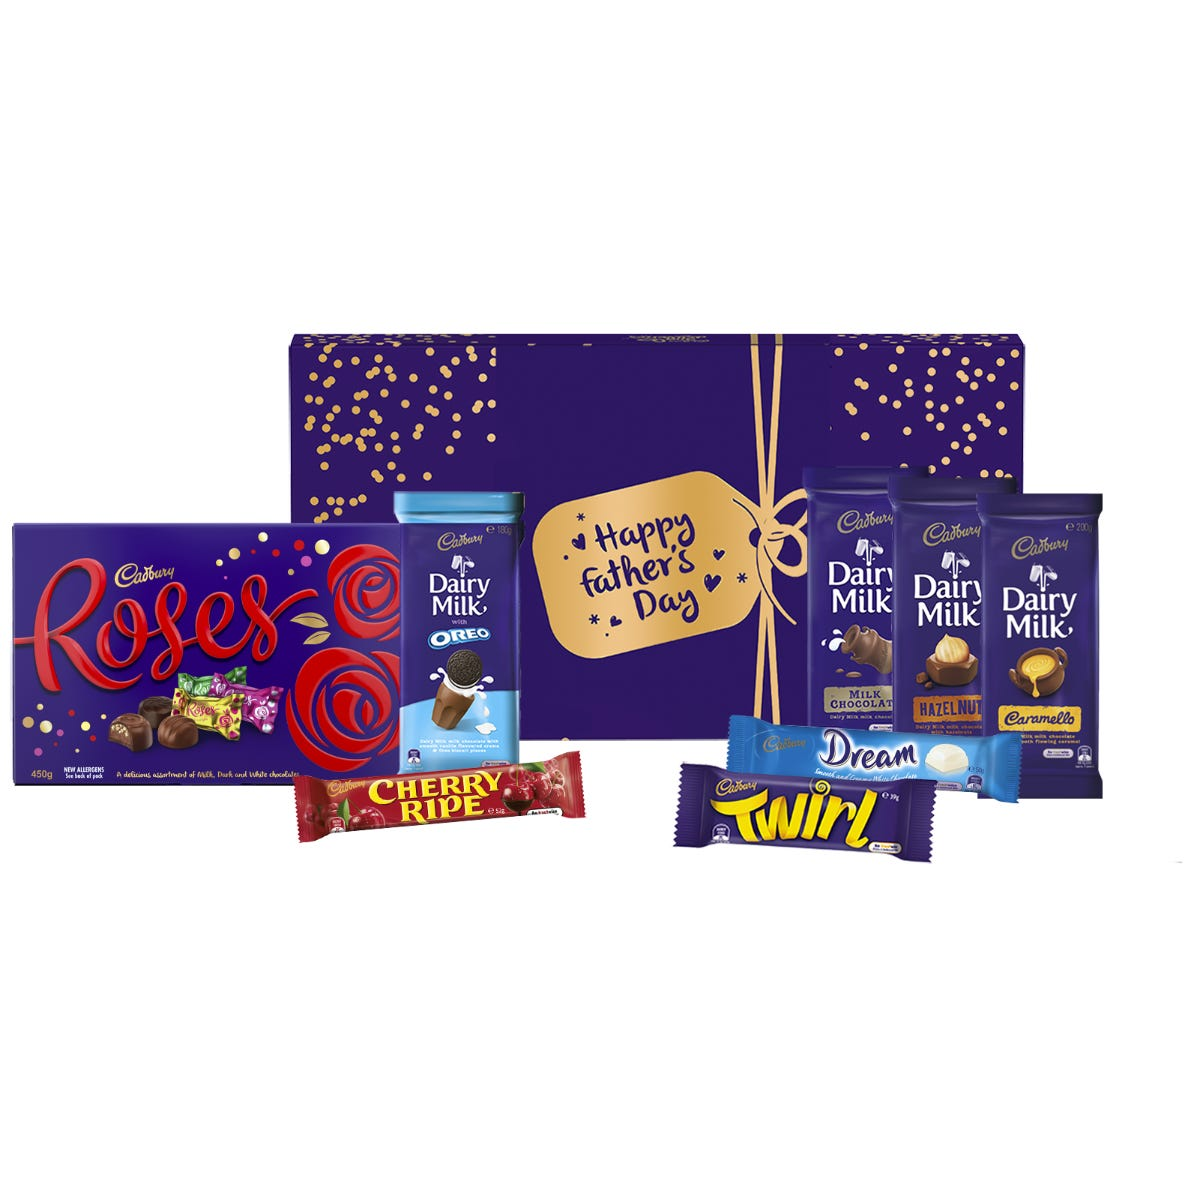 Cadbury Roses Very Much Chocolate Gift Hamper - Happy Father's Day